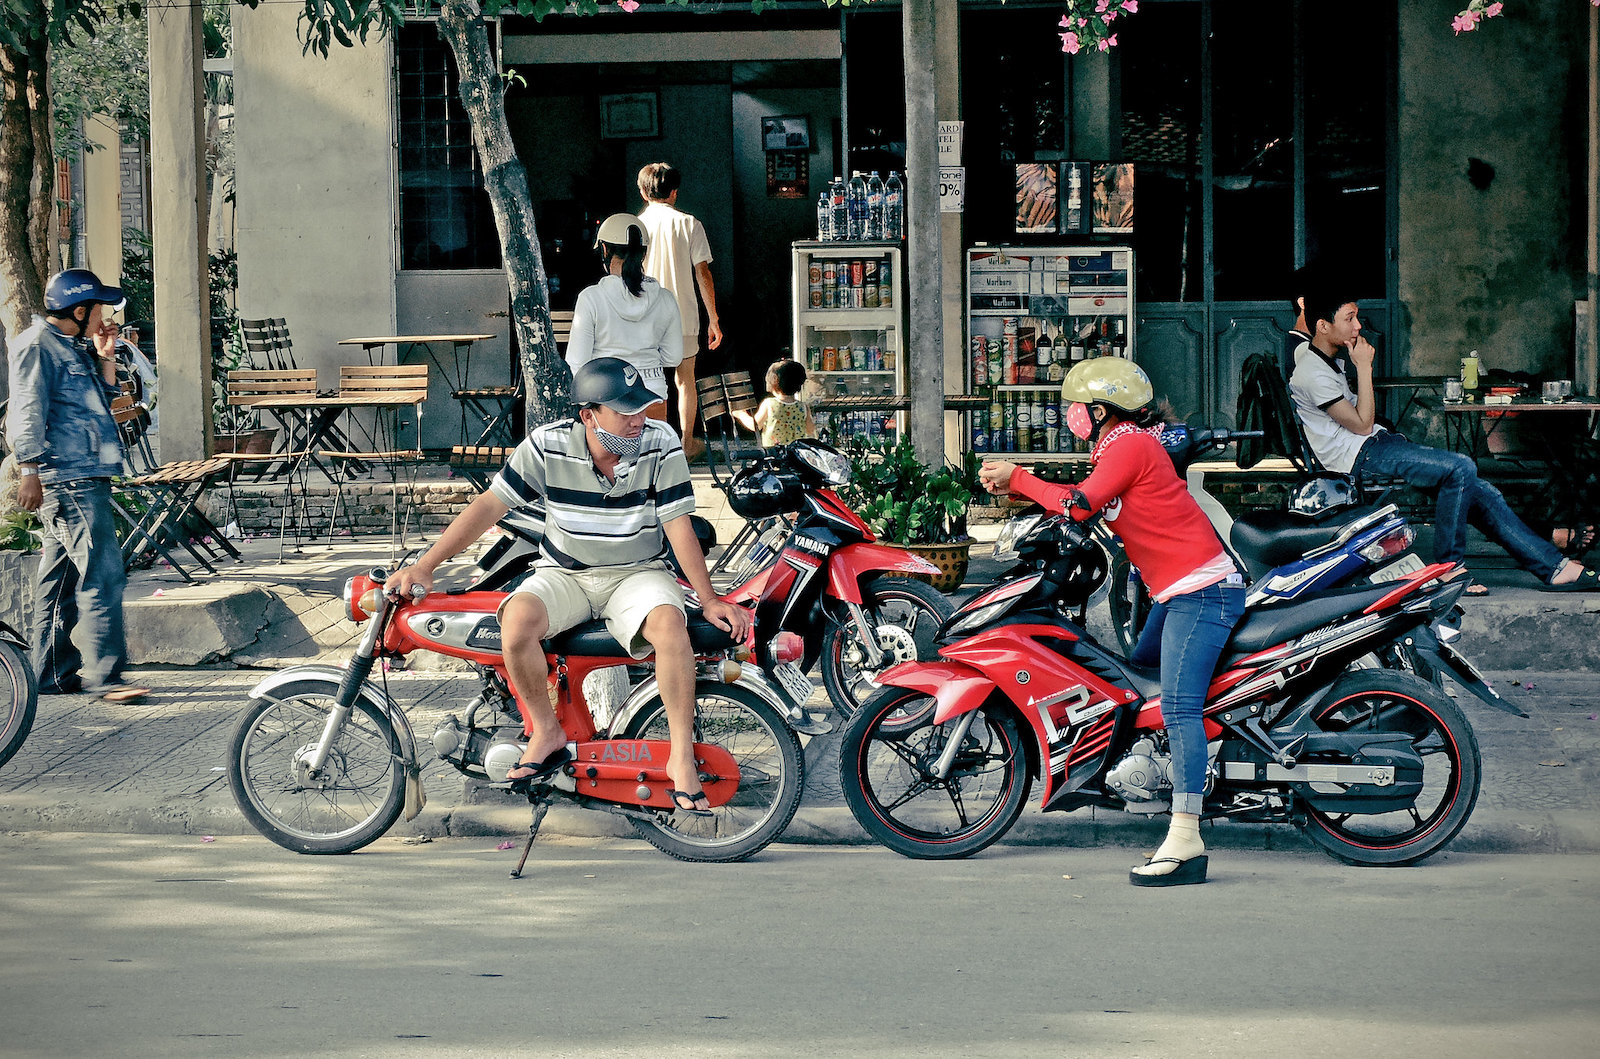 Image of two people talking on parked motorbikes in Hoi An, Vietnam